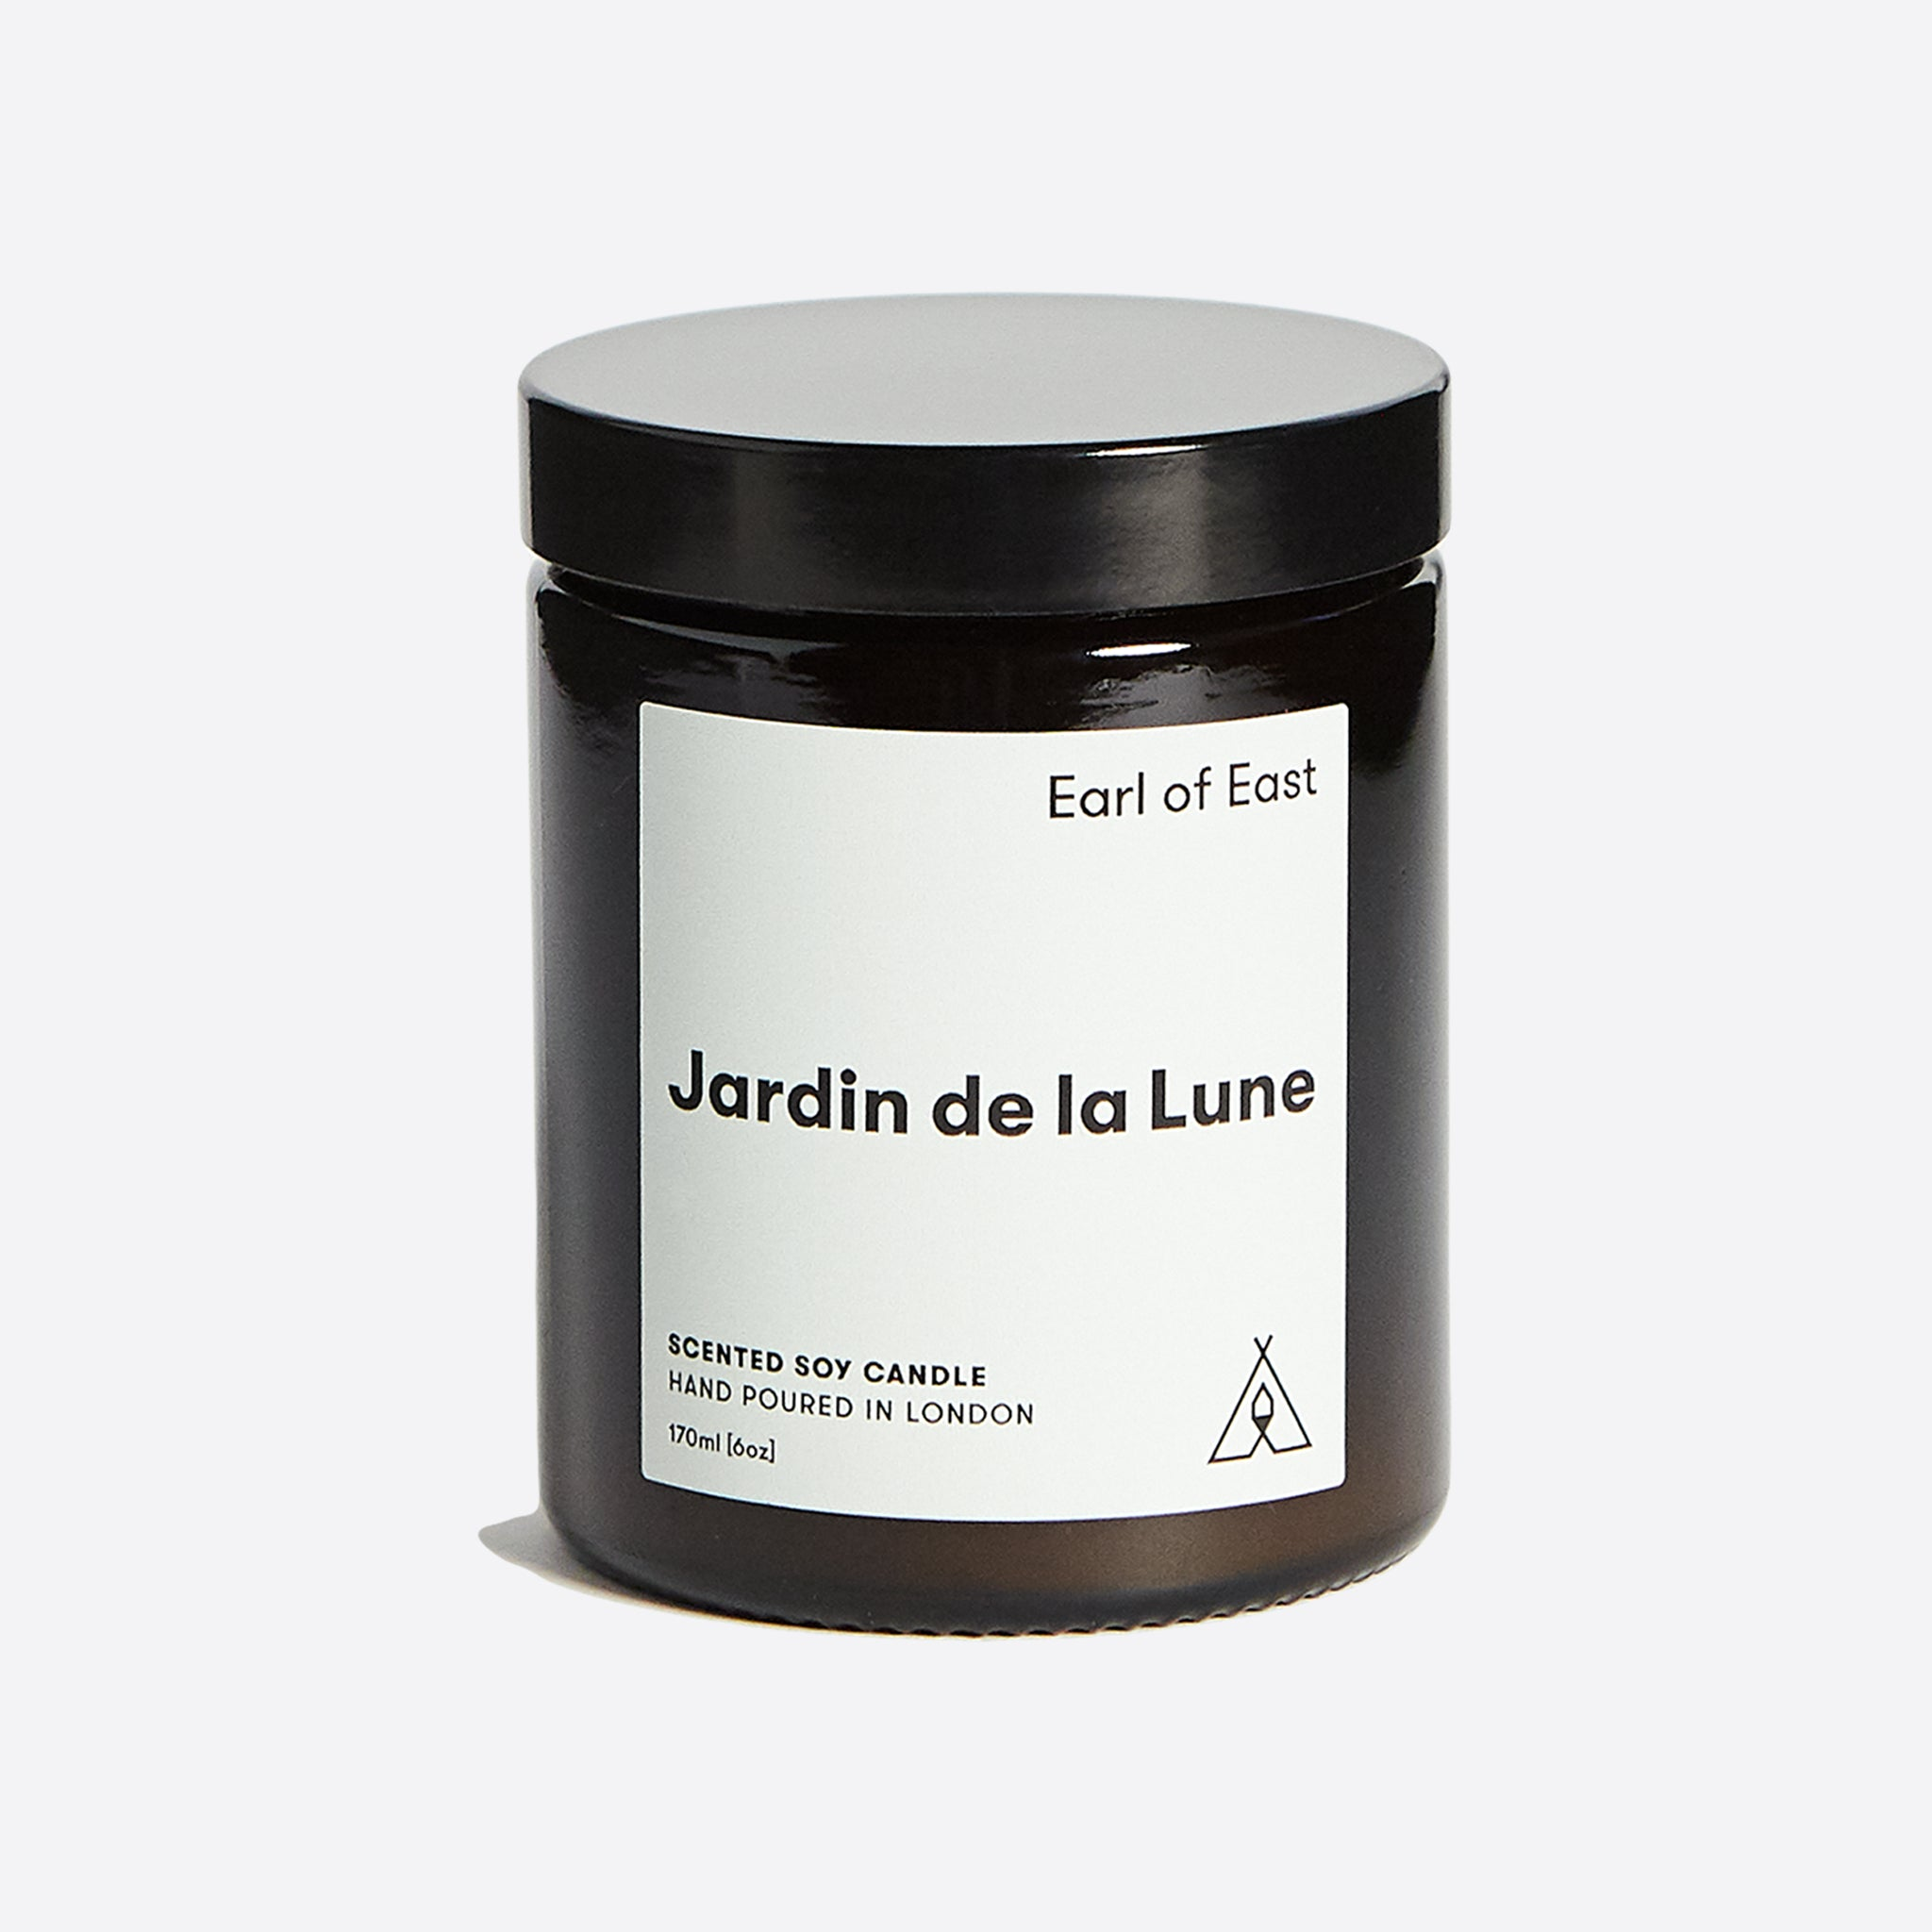 Earl of East Soy Wax Candle - Jardin De La Lune - Medium